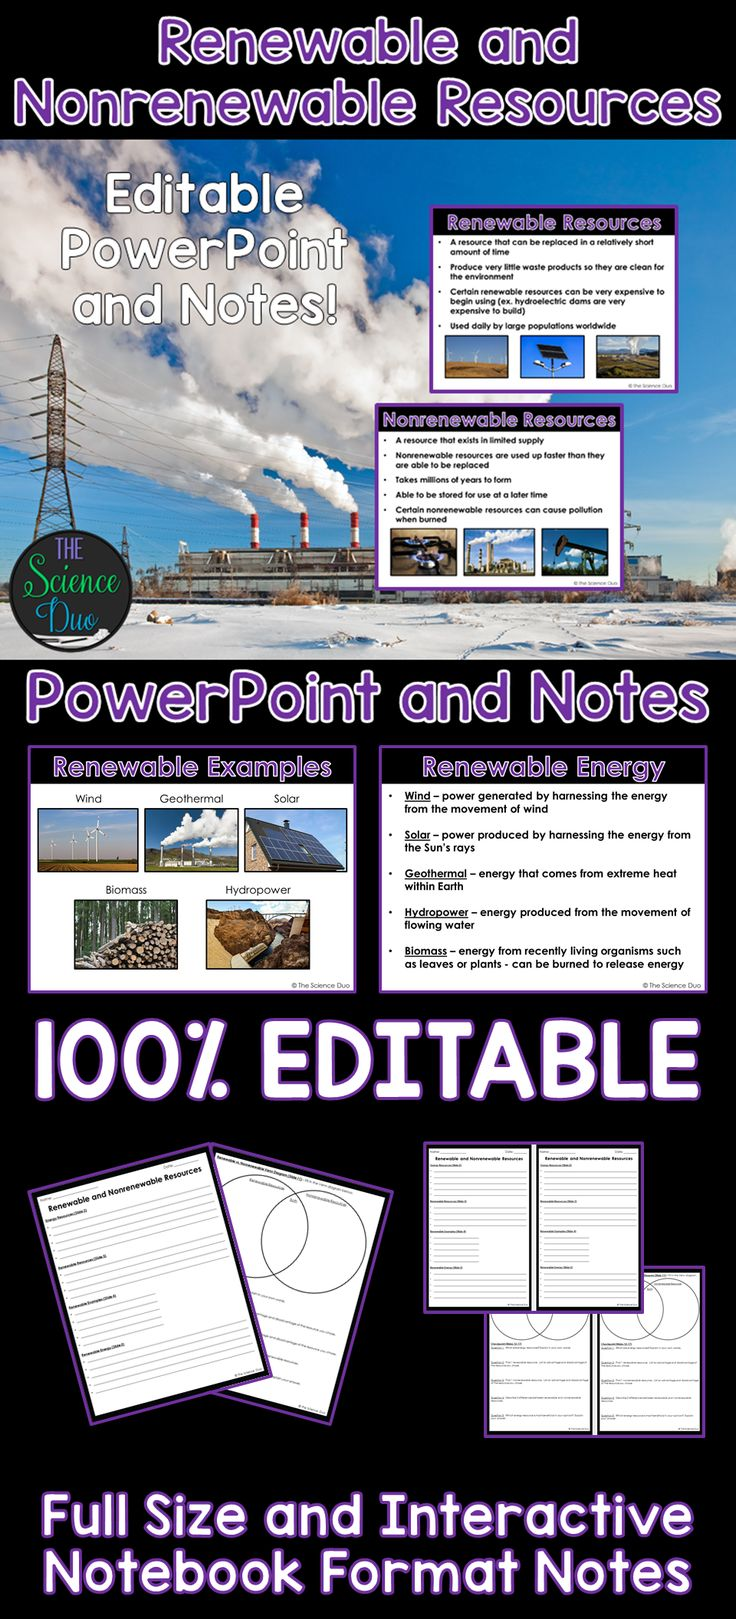 Introduce or help your students review Renewable and Nonrenewable Energy Resources with this PowerPoint presentation and student notes pages.  Wind, Solar, Hydropower, Geothermal, Biomass, Coal, Oil, Natural Gas, and Nuclear are all covered in this product.